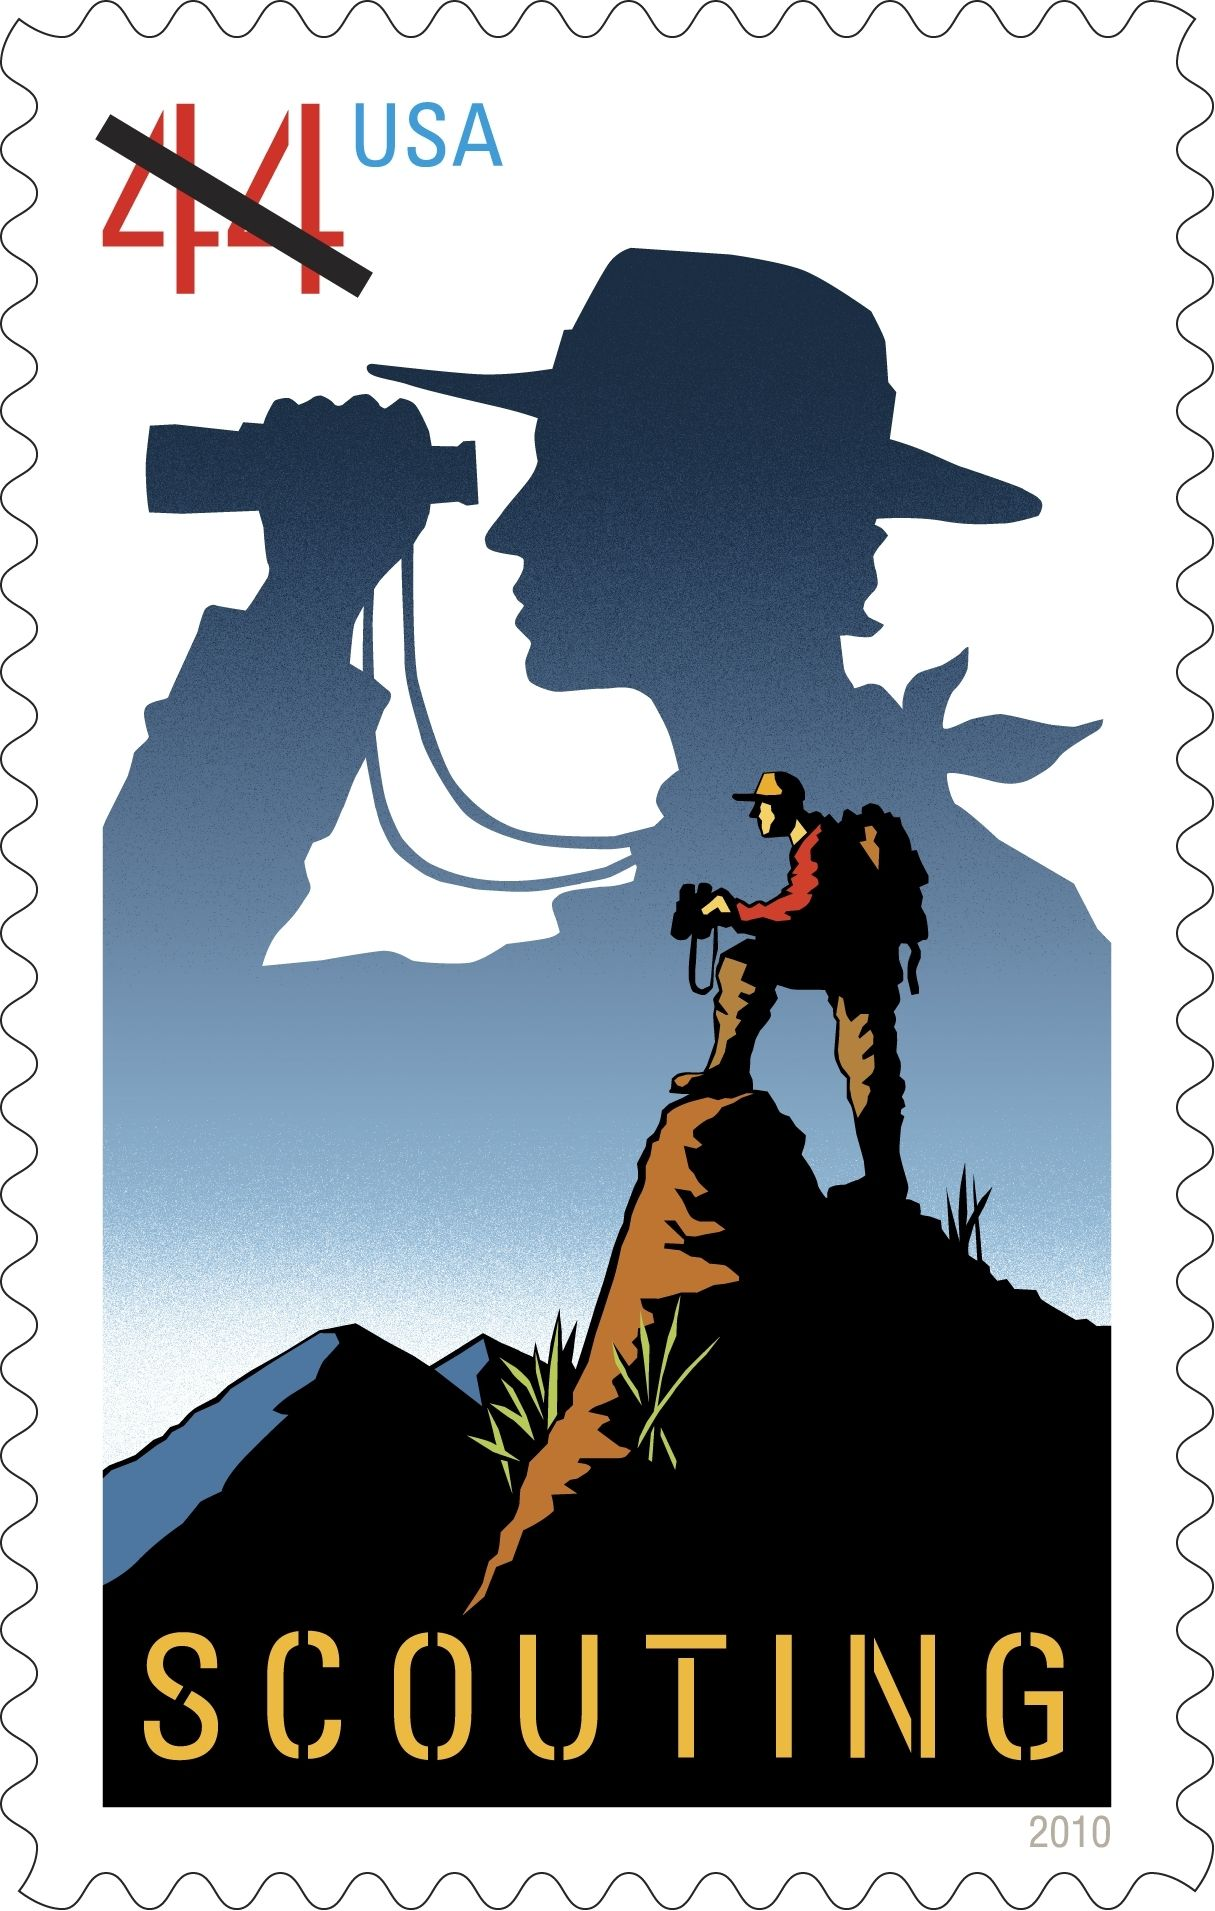 USA Postal Stamp celebrating the 100th Anniversary of Scouting in – Eagle Scout Requirements Worksheet